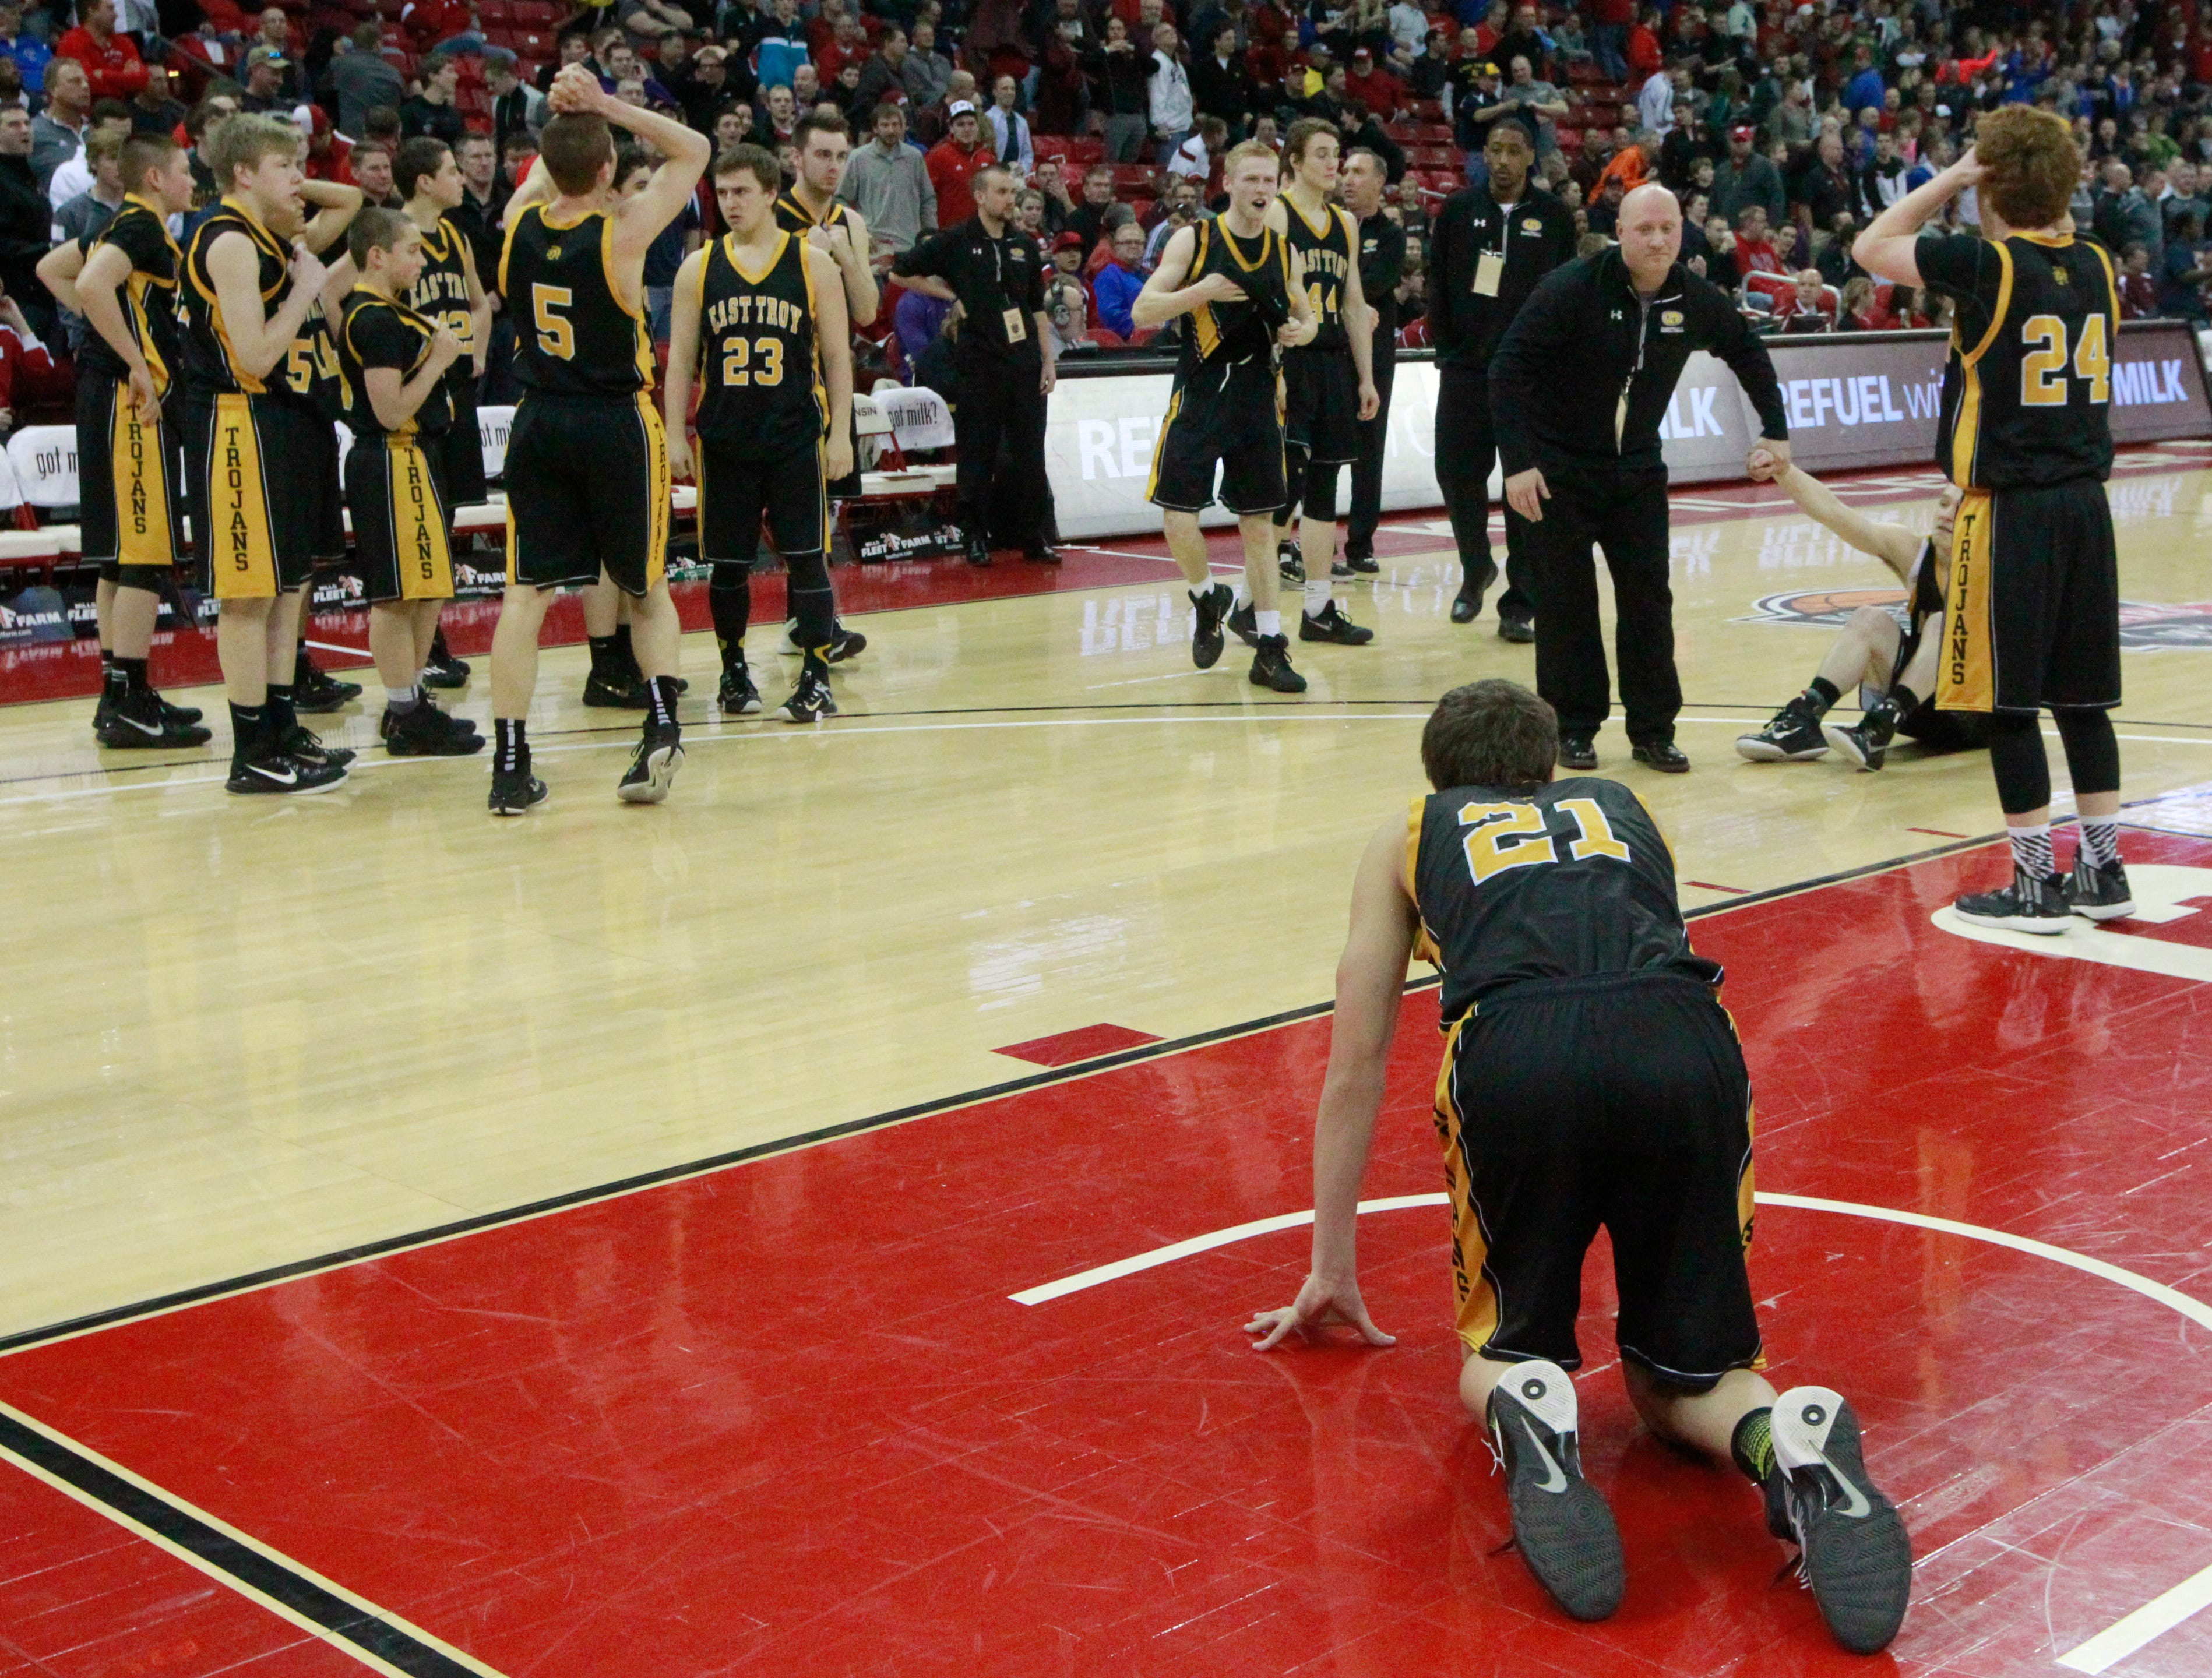 East Troy players reacts after their division 3 semifinal game at the WIAA State Boys Basketball Tournament Friday, March 20, 2015 at the Kohl Center in Madison, Wis. Appleton Xavier beat East Troy 70-69.